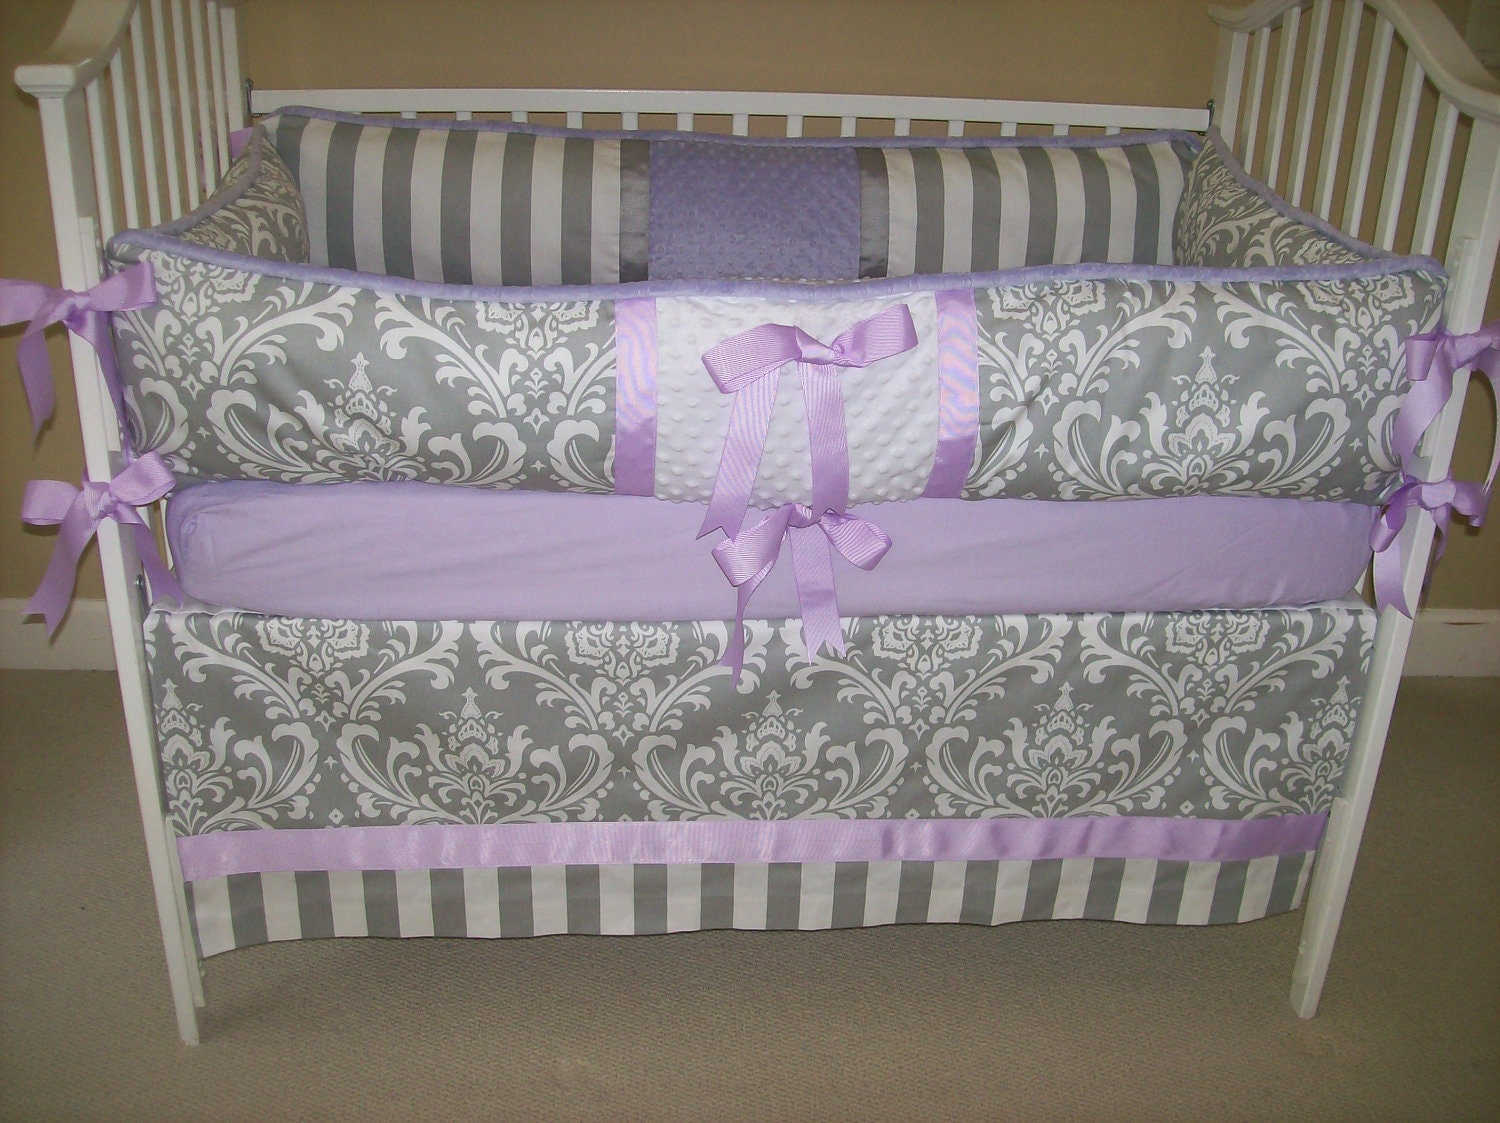 lavender and grey baby bedding 4 piece set by babydesignsbyelm